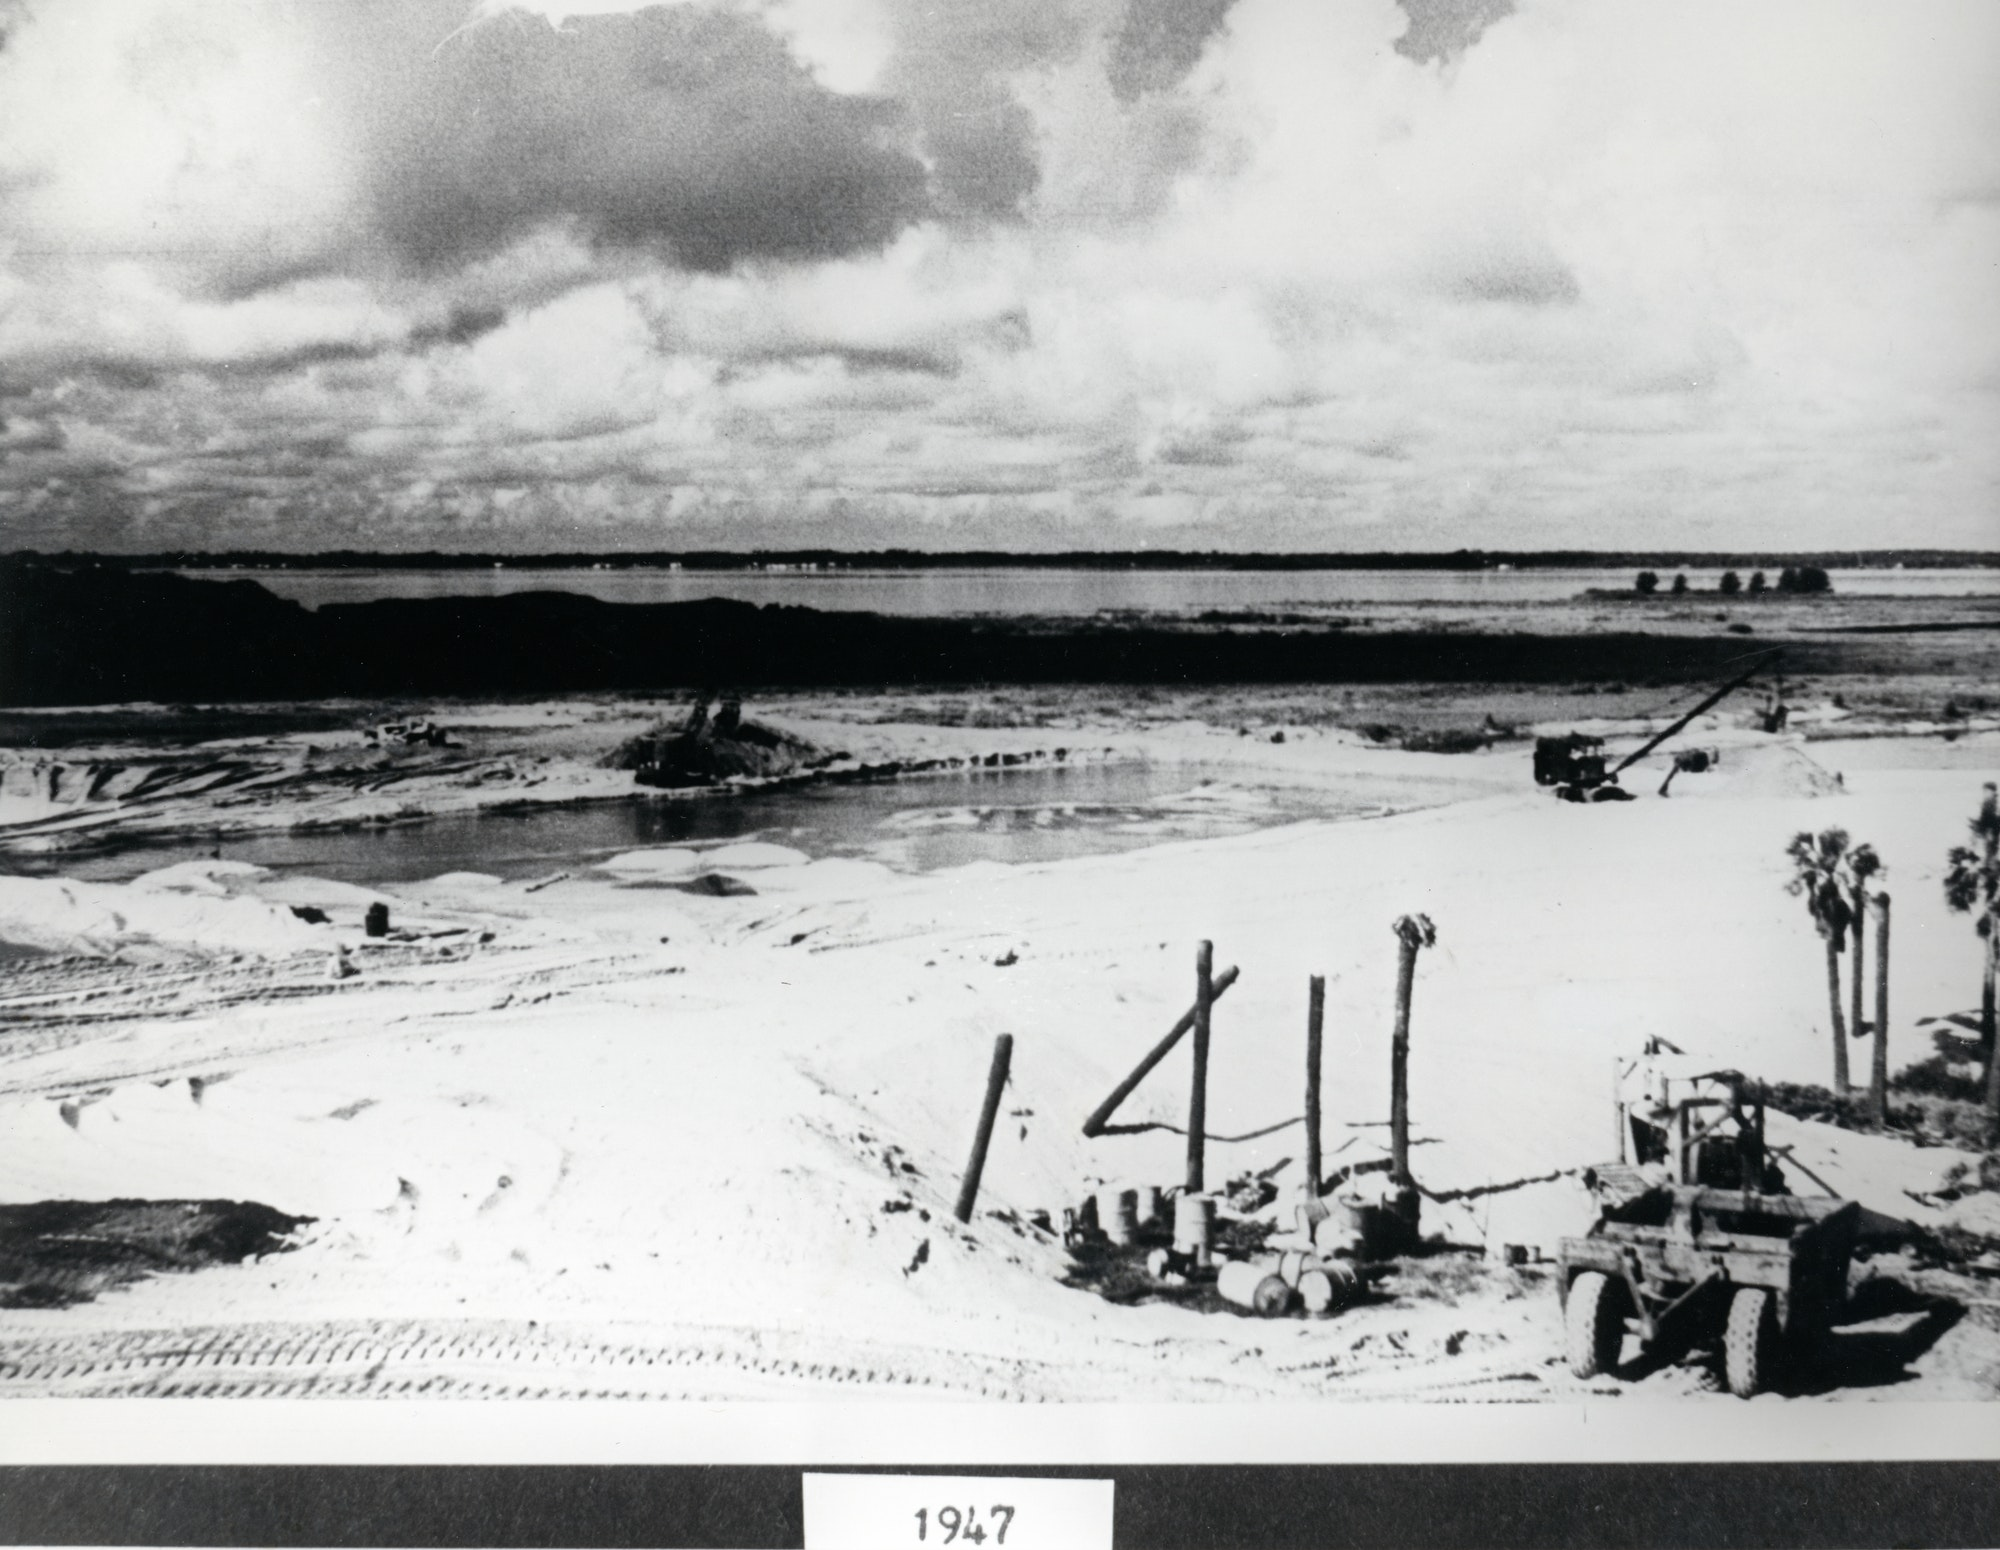 construction equipment staged at the inlet site during 1947